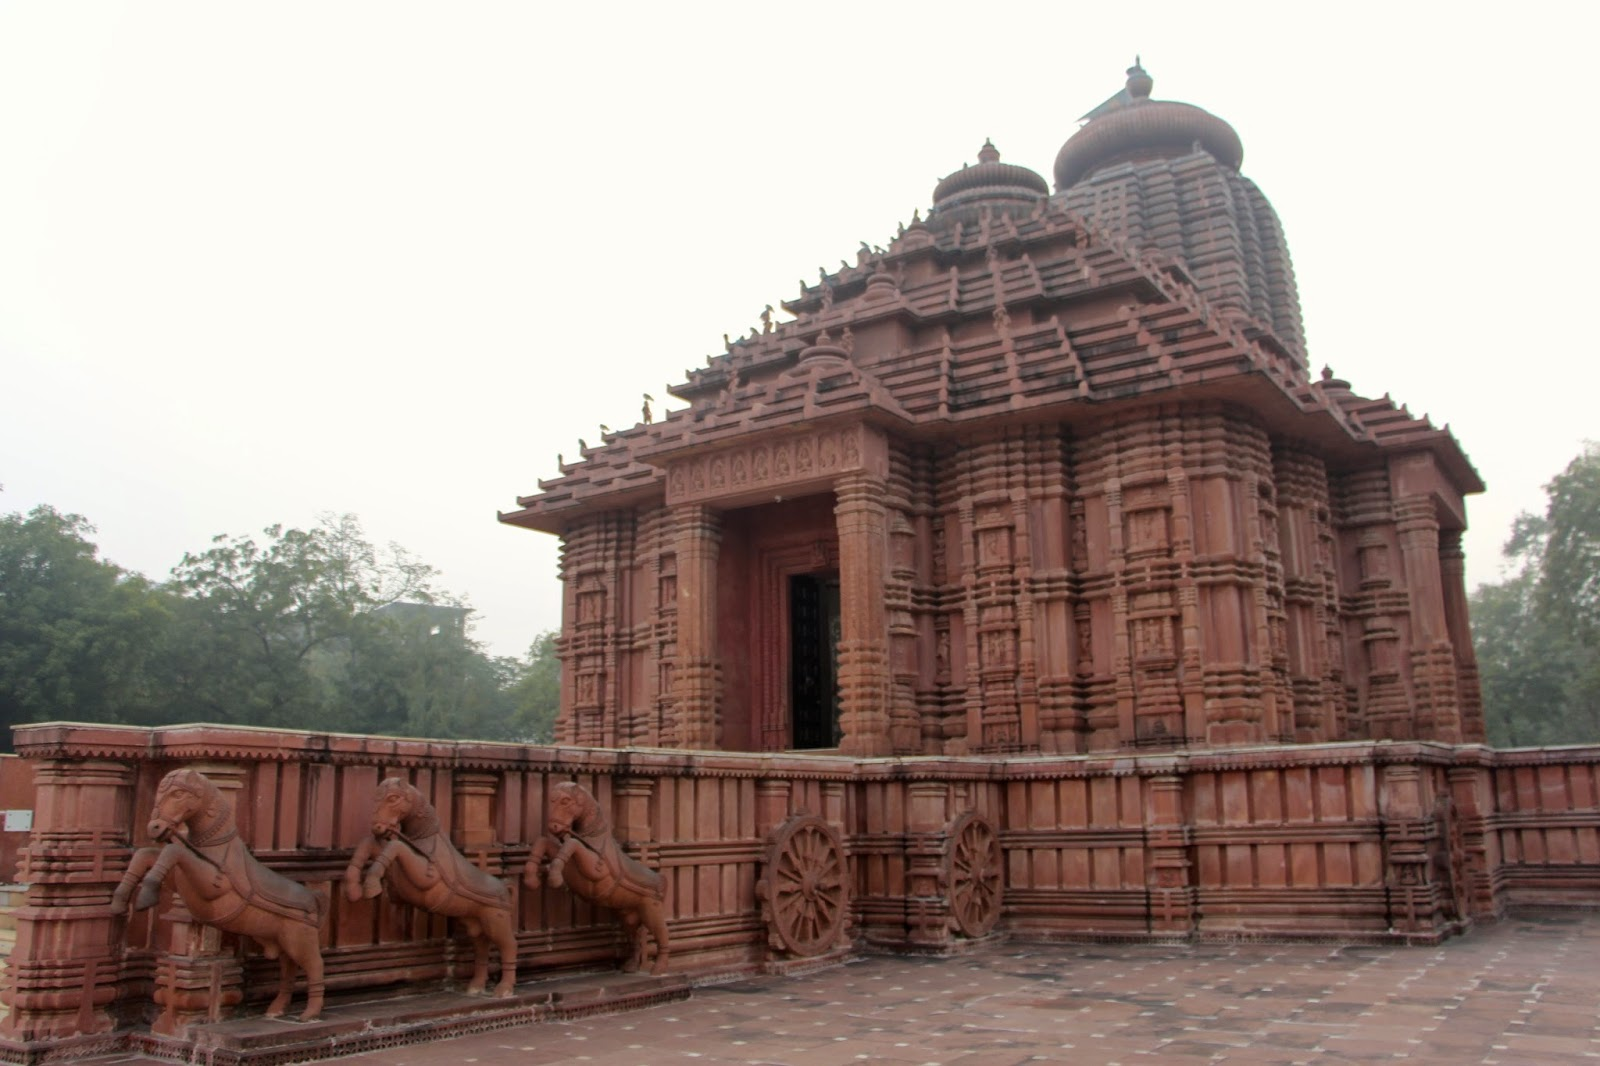 Sridhar peddisettys space incredible india temples in gwalior referring wiki saas bahu ka mandir mother in law daughter in laws temple or sahastrabahu temple is located to the east of gwalior fort xflitez Gallery